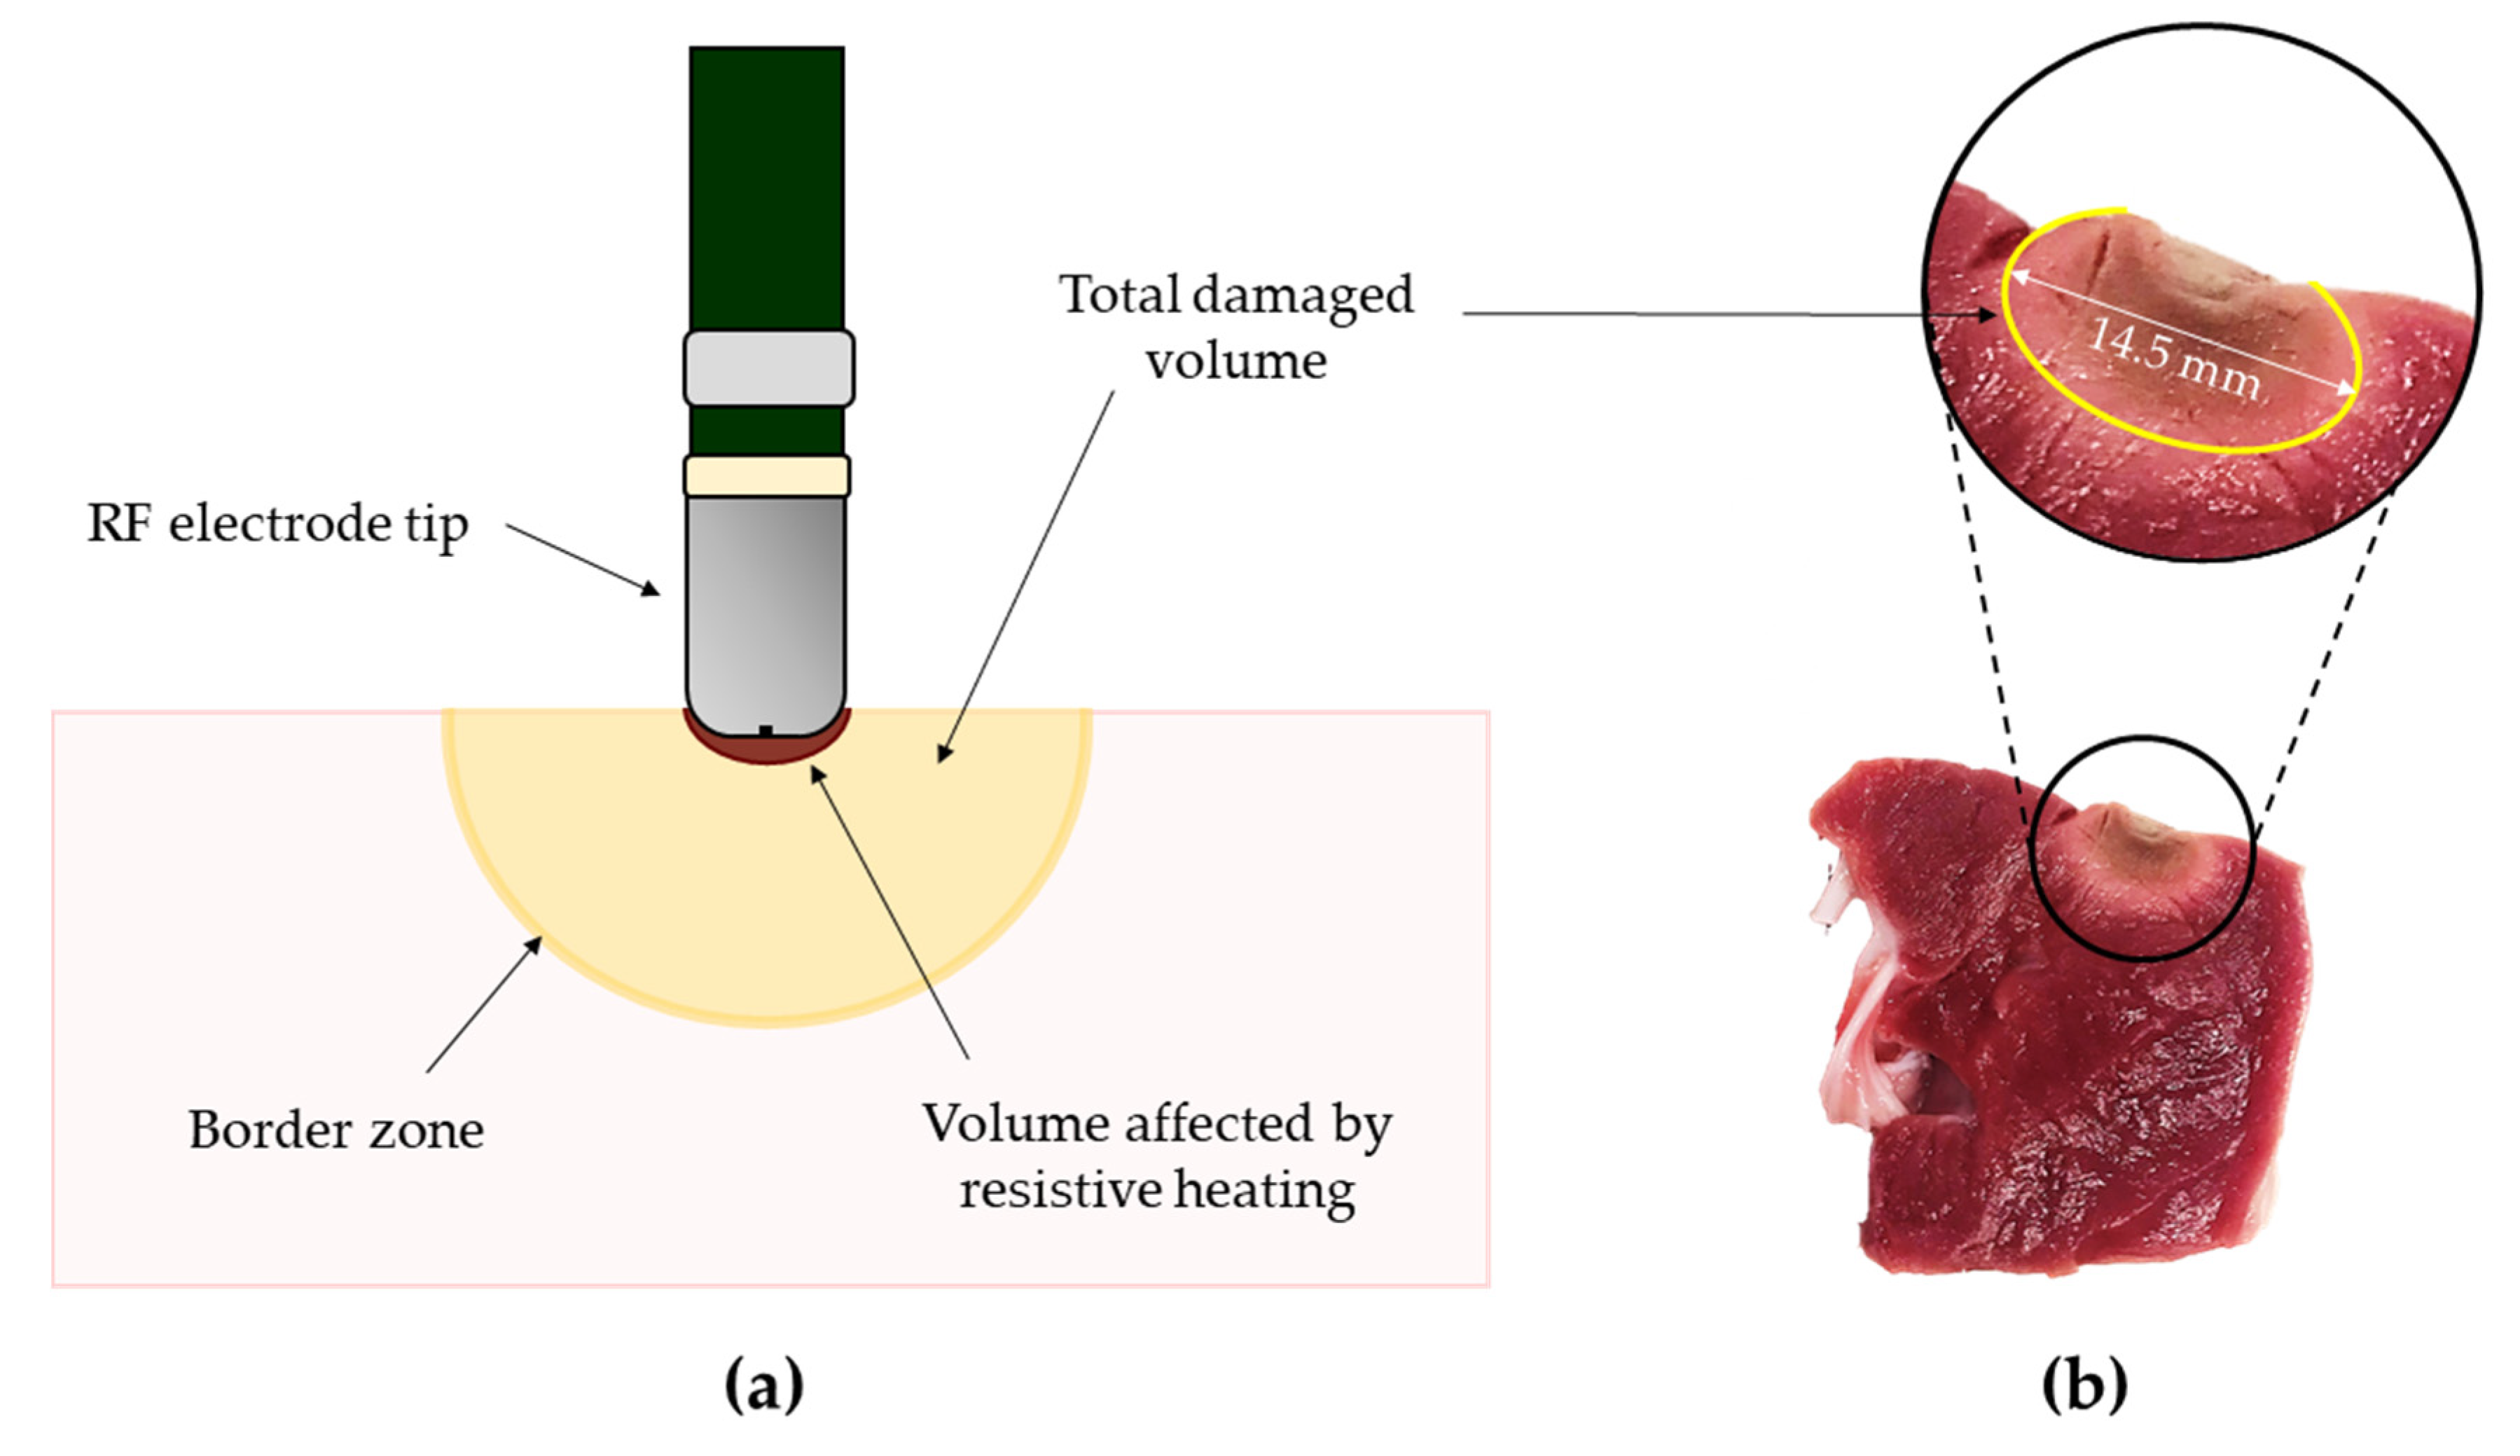 Sensors Free Full Text Techniques For Temperature Monitoring Of Myocardial Tissue Undergoing Radiofrequency Ablation Treatments An Overview Html